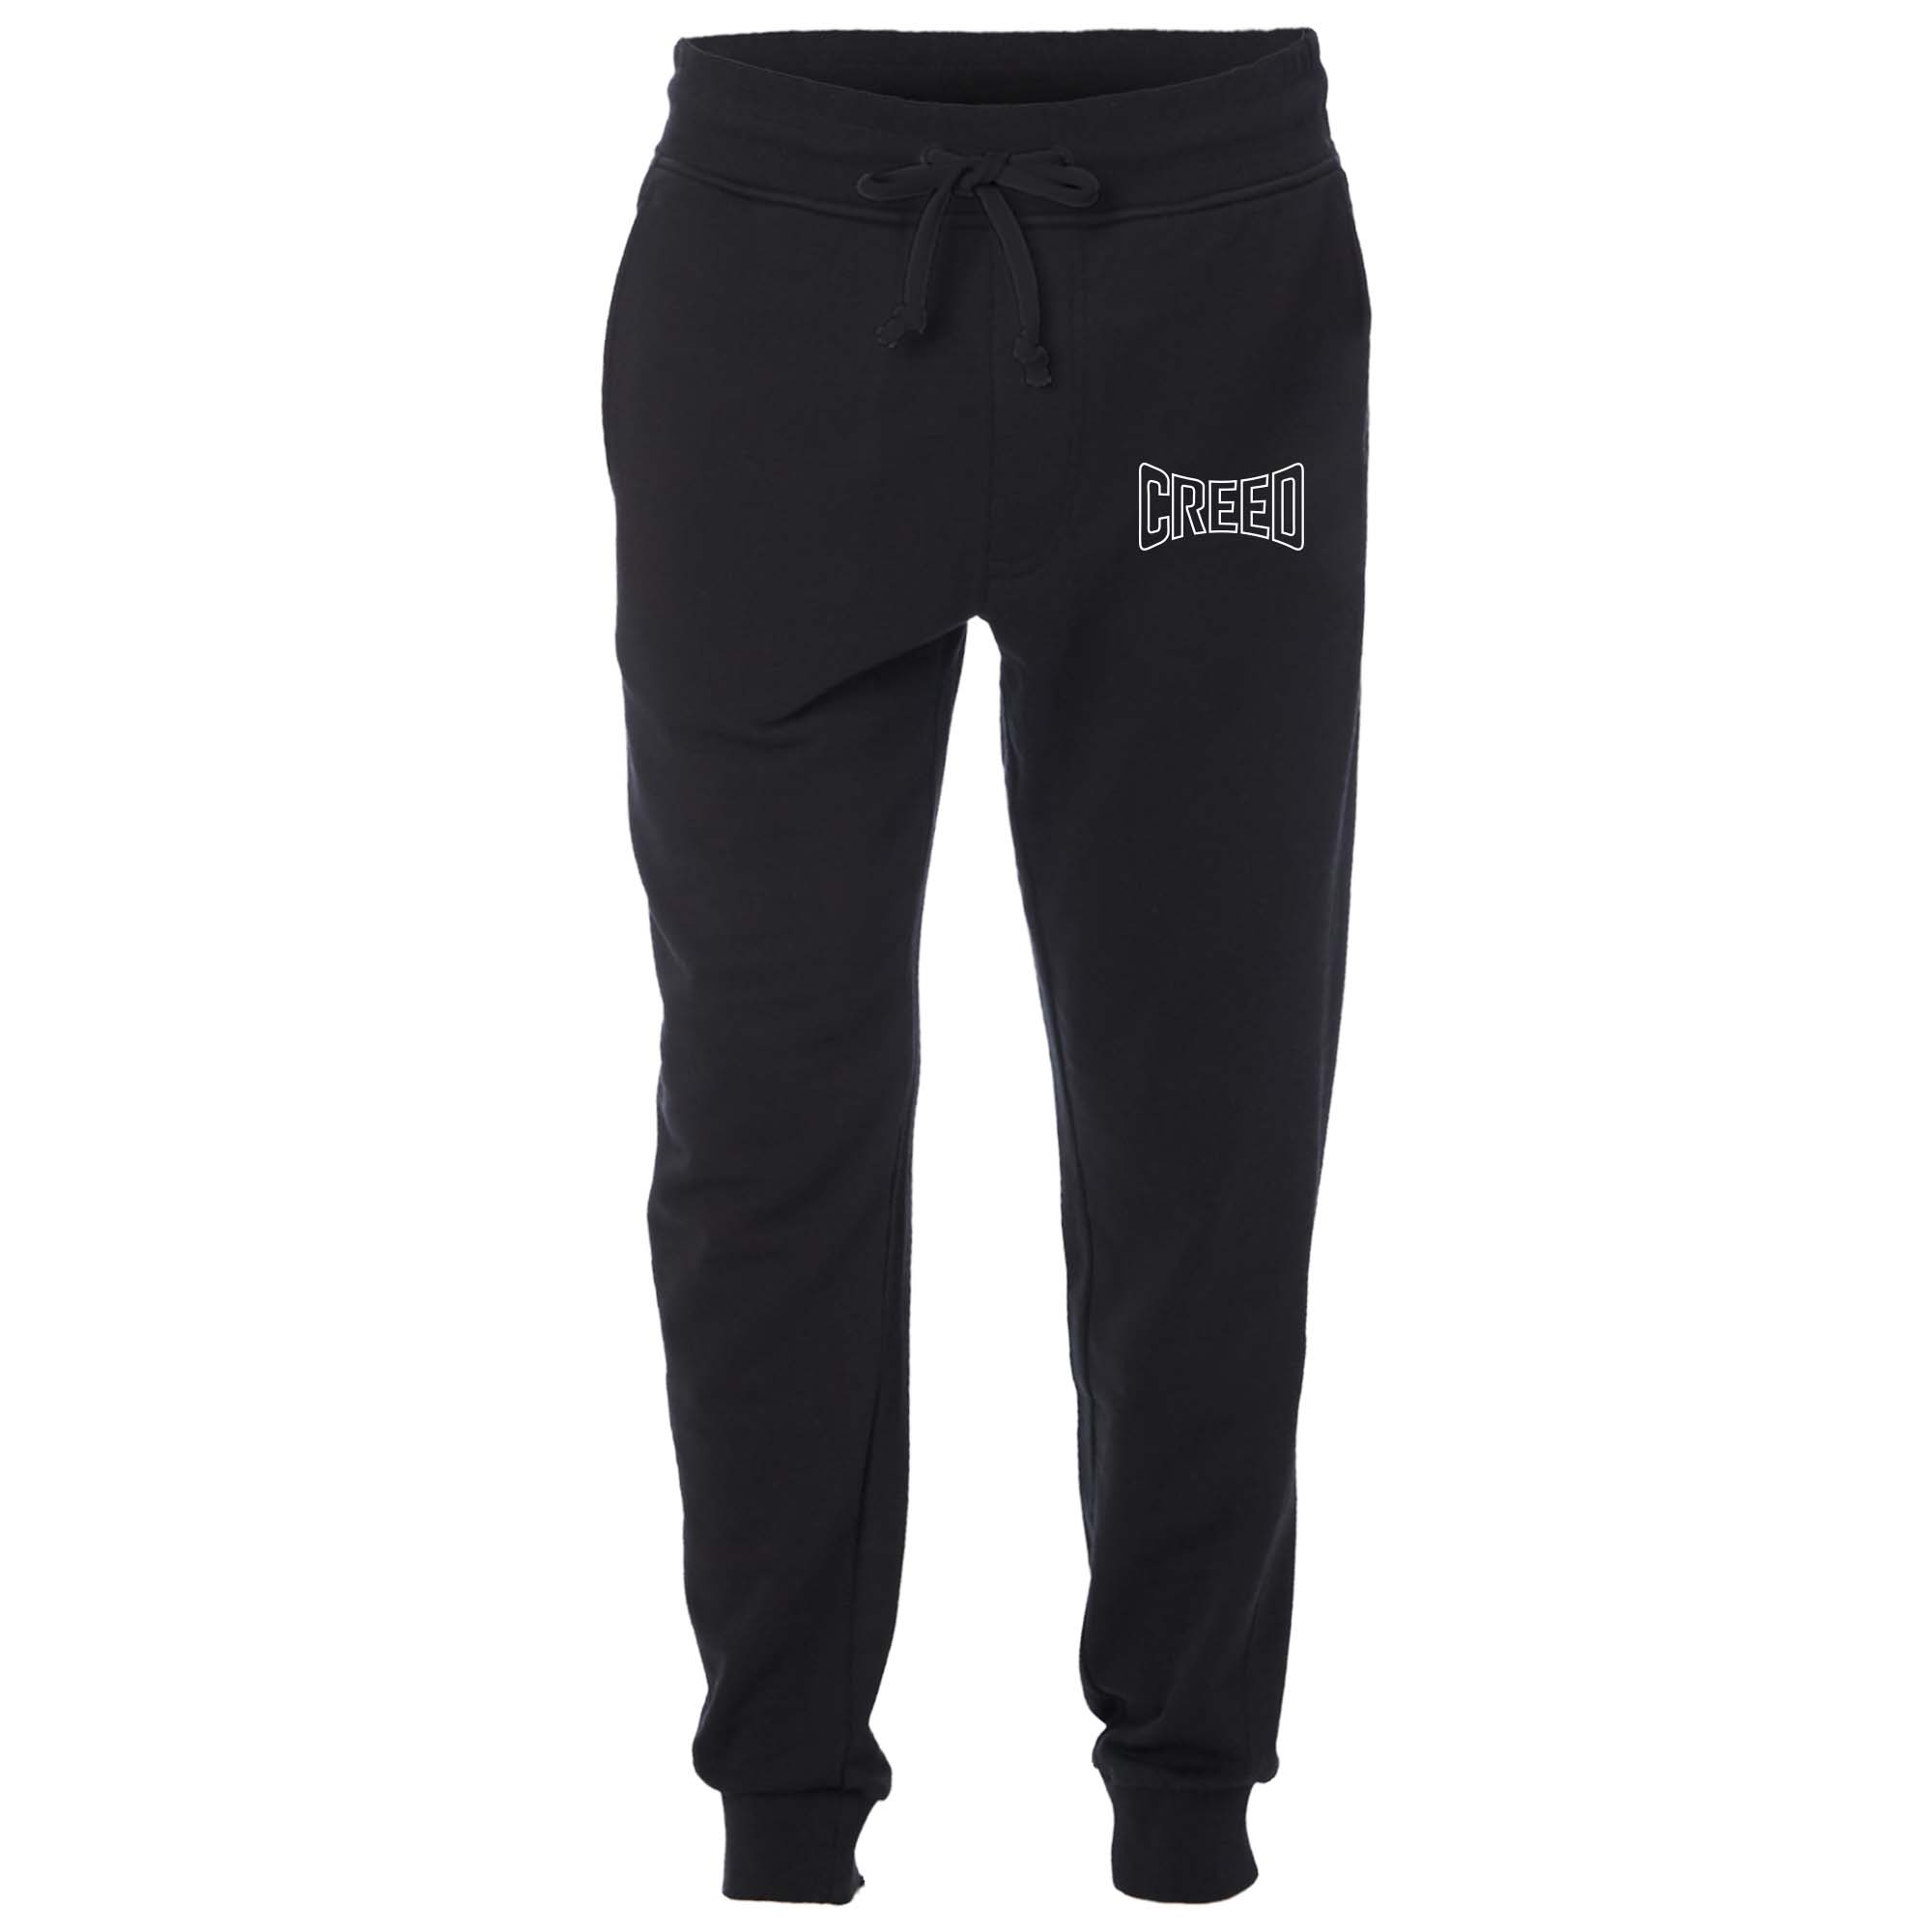 CREED Jogger Sweatpants